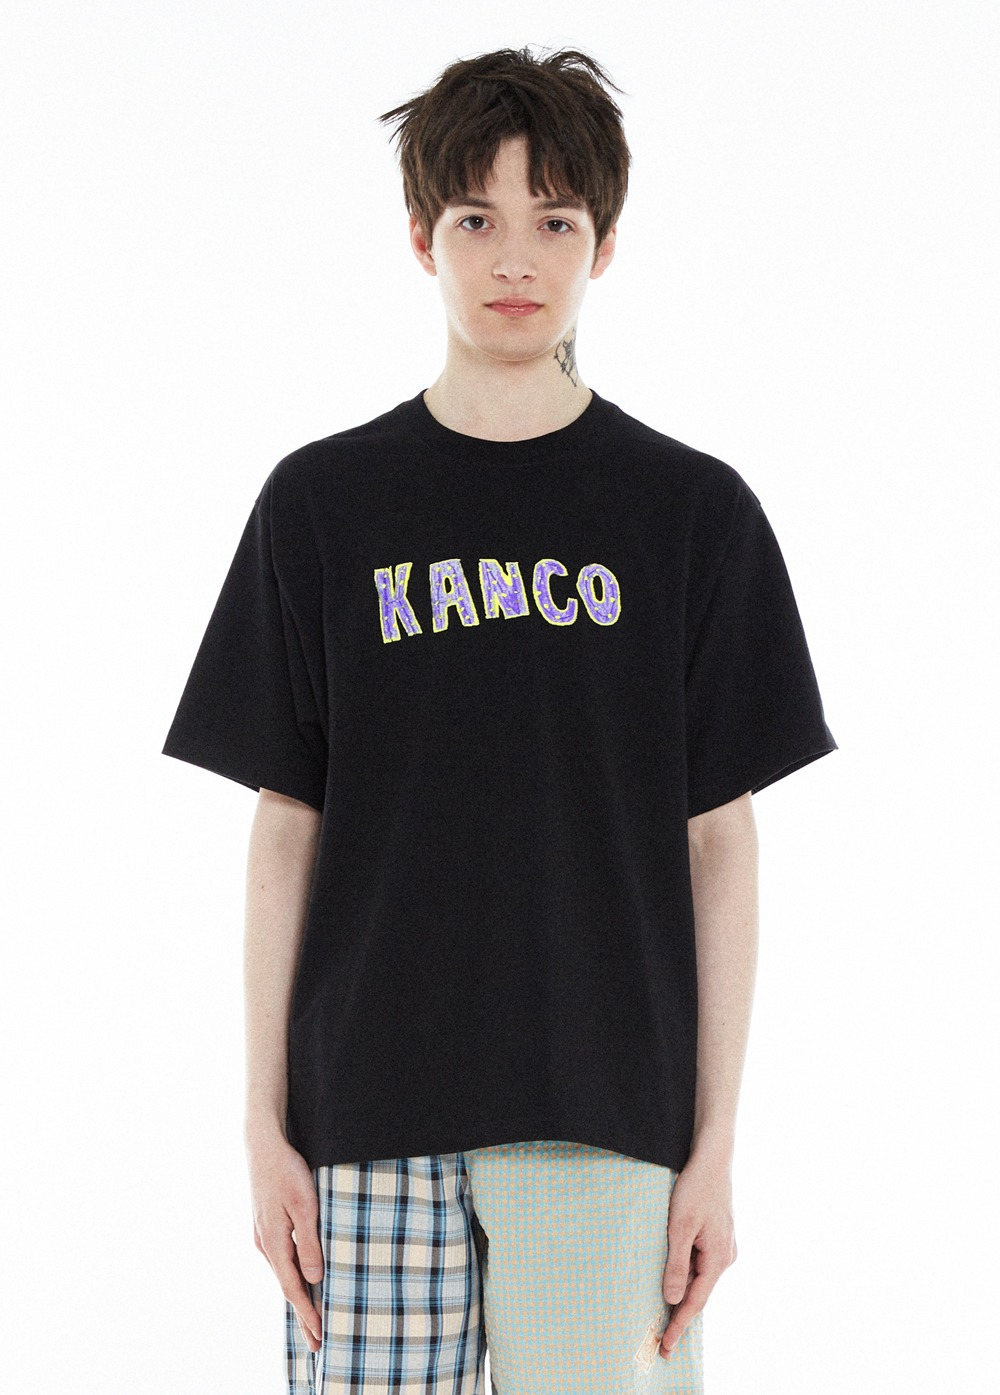 KANCO TYPO TEE black